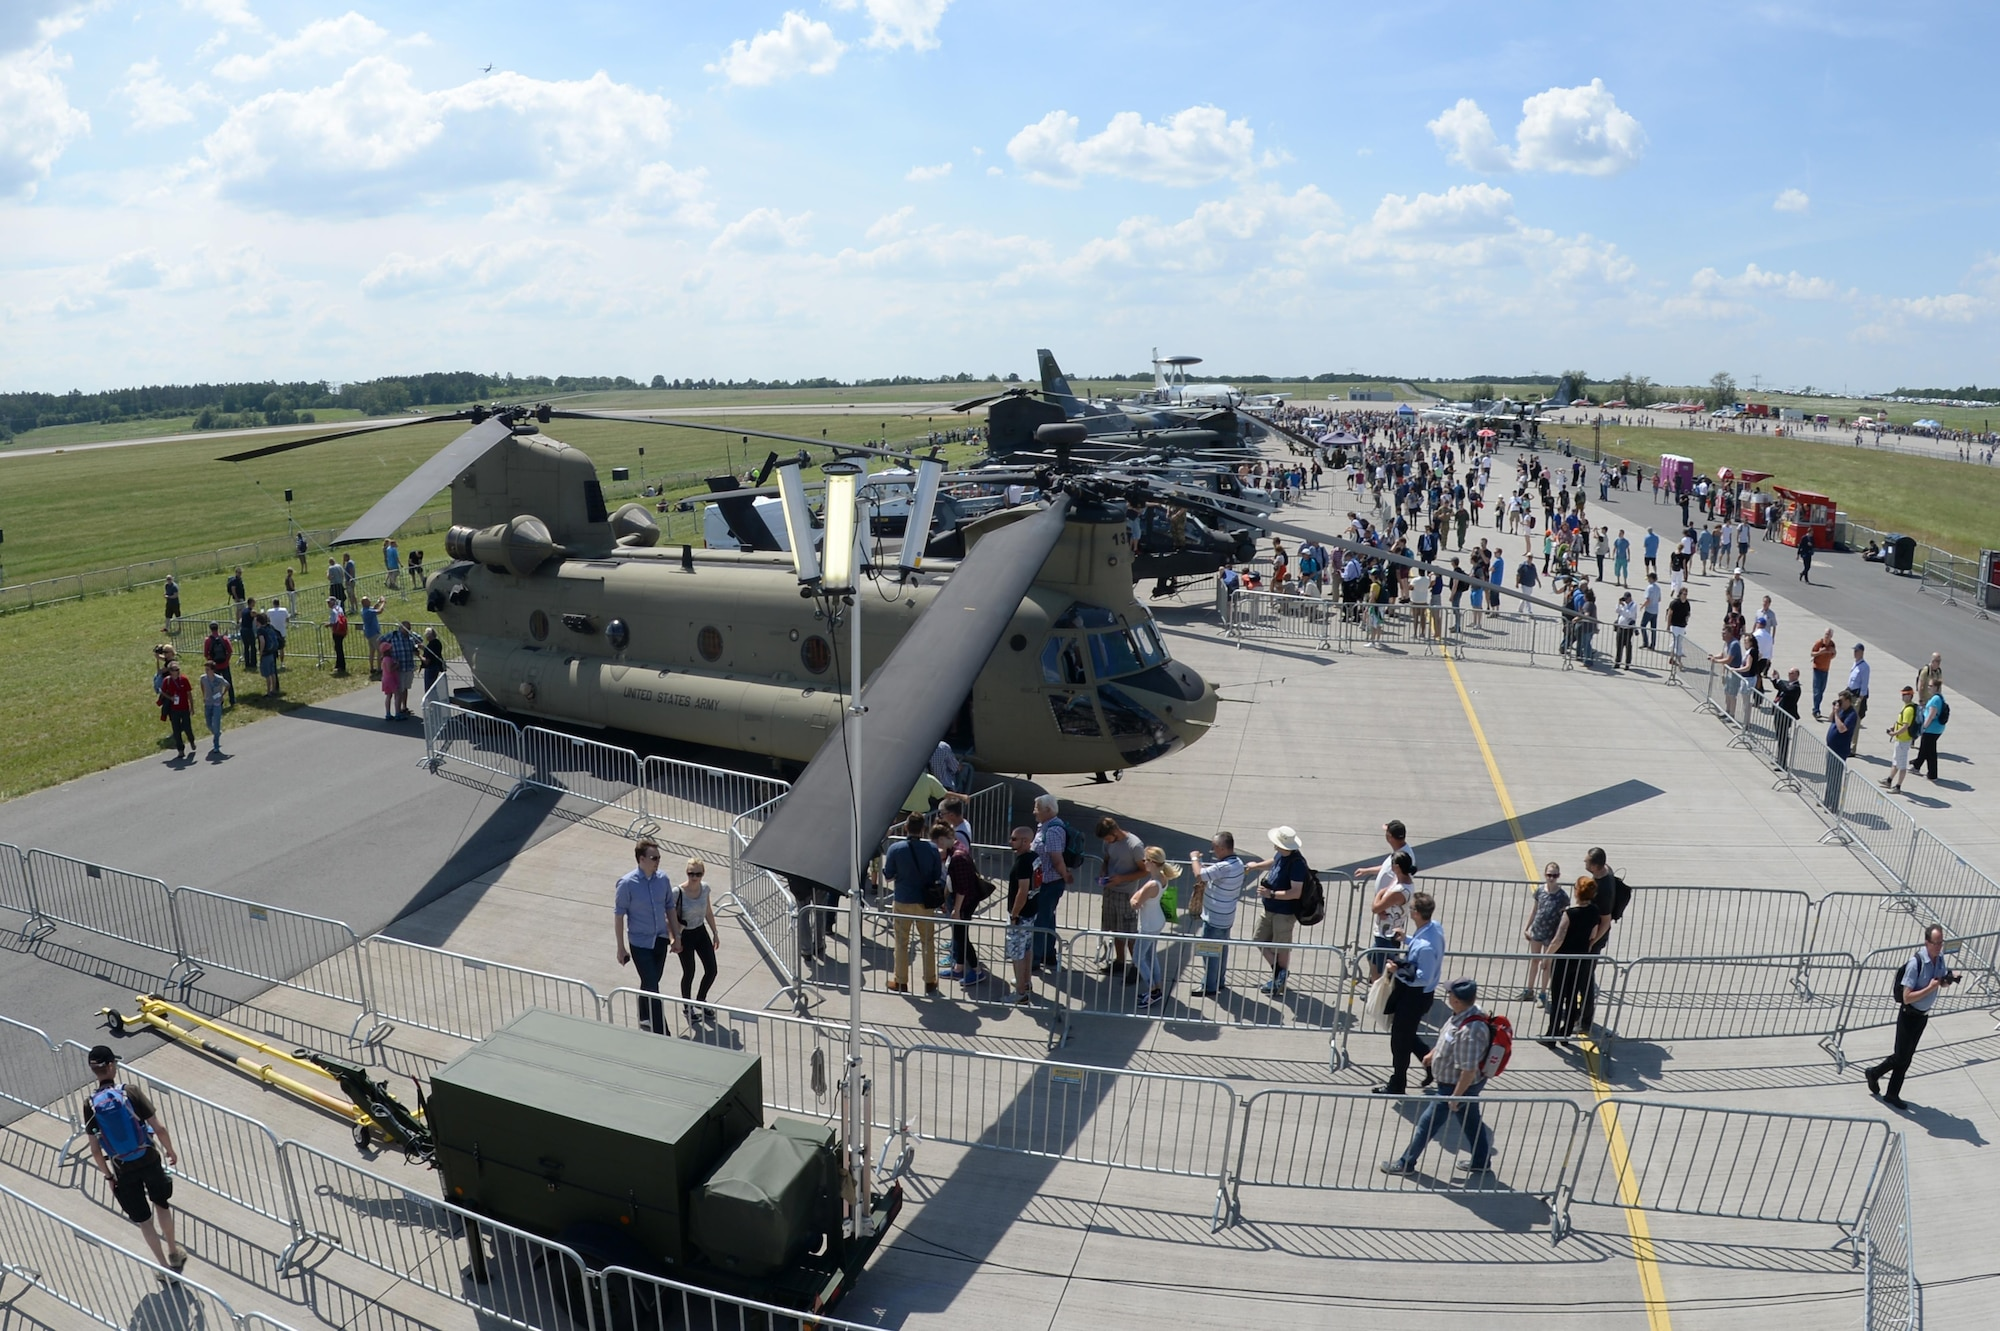 A CH-47 Chinook from Ansbach is parked for static display at the Berlin Air and Trade Show, Berlin, June 3, 2016. The Department of Defense participates in air and trade exhibitions to provide honest, objective and candid portraits of the capabilities of the U.S. aircraft presented, which improves international understanding between air crews. (U.S. Air Force photo/Staff Sgt. Emerson Nuñez)